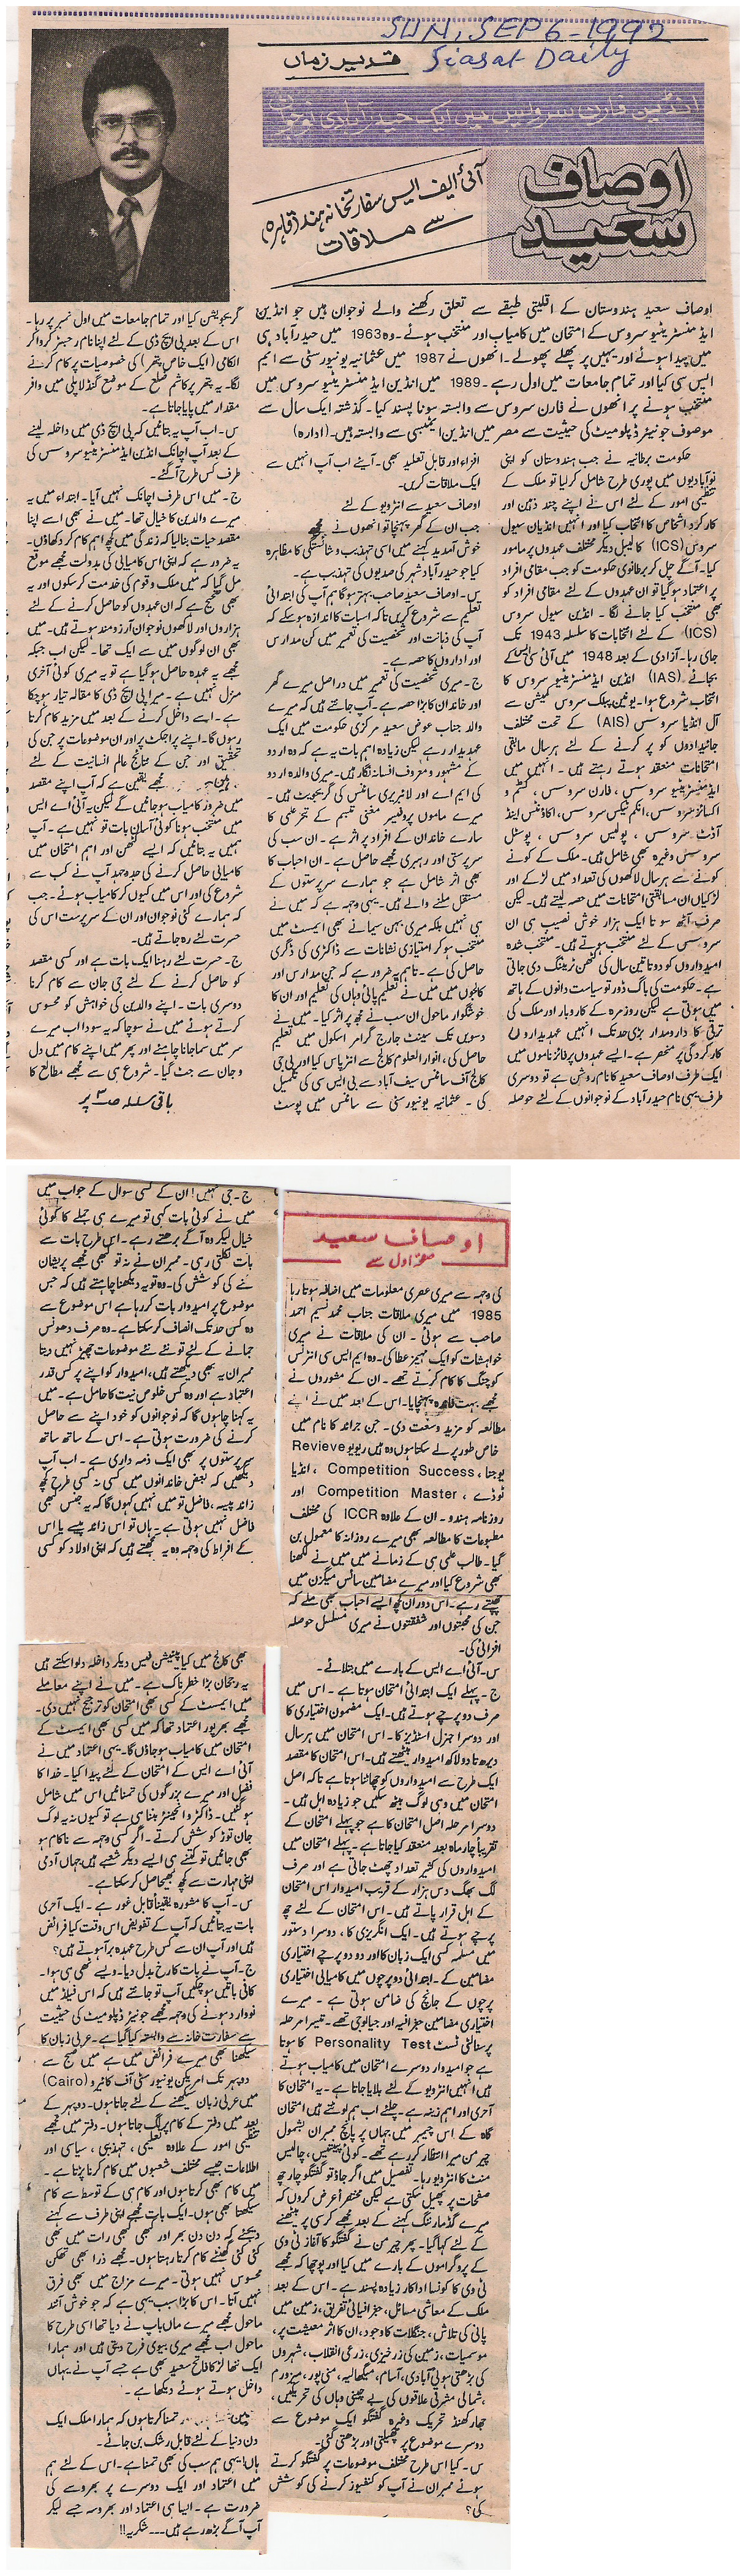 Ausaf Sayeed's interview by Qadeer Zaman